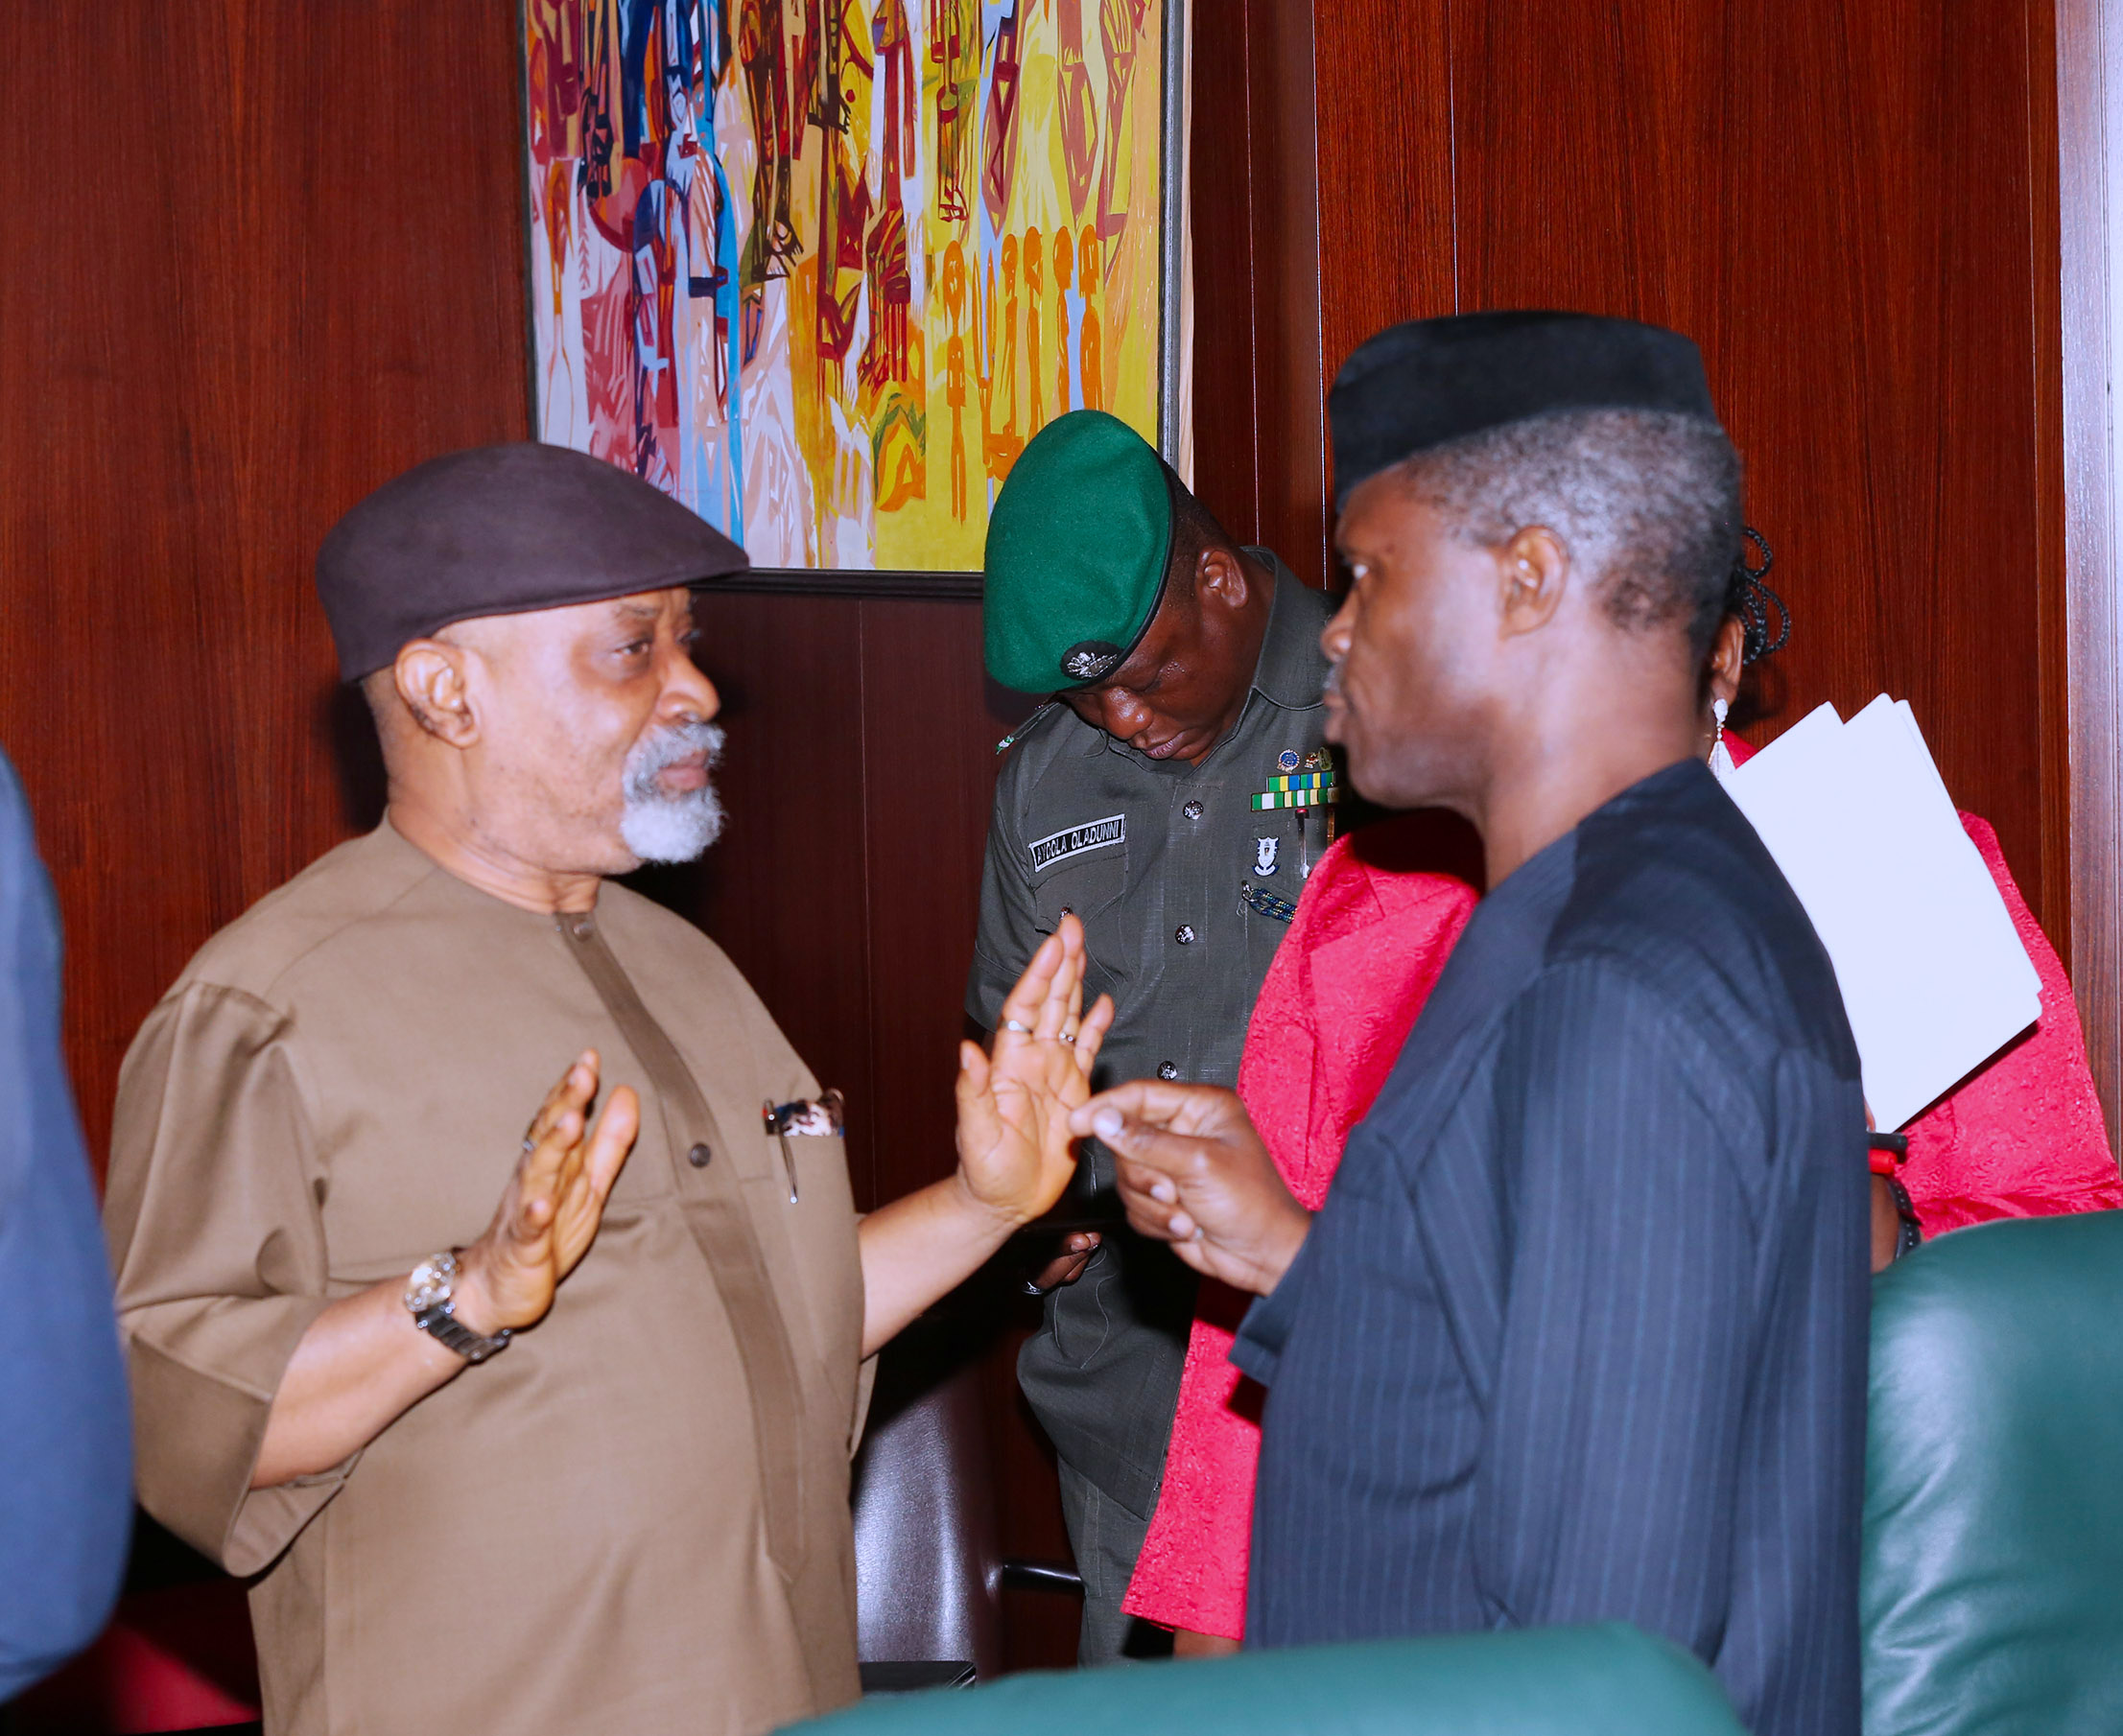 AG PRESIDENT OSINBAJO PRESIDES OVER FEC MEETING 5. R-L; Acting President Yemi Osinbajo chats with Minister of Labour and Employment Sen Chris Ngige shortly after the FEC Meeting at the Council Chambers, State House Abuja. PHOTO; SUNDAY AGHAEZE./STATE HOUSE IN ABUJA. JULY 19 2017